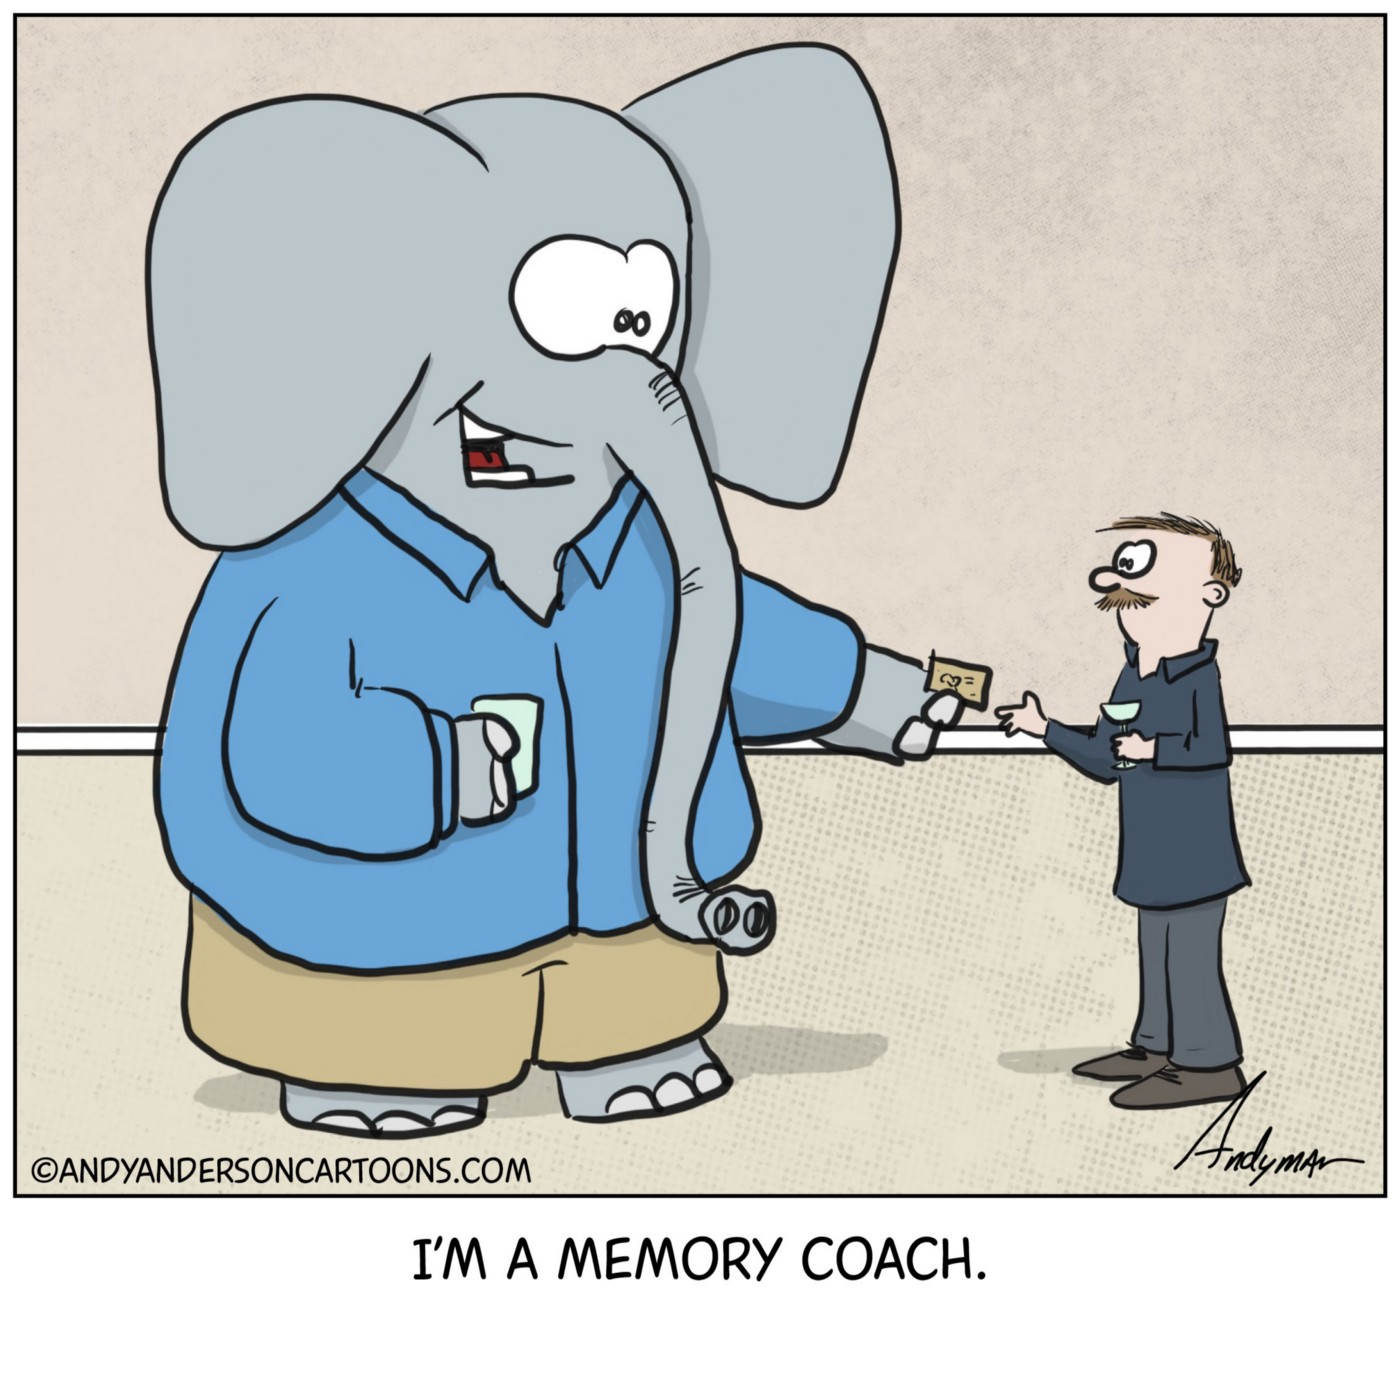 Cartoon about an elephant as a memory coach by Andy Anderson